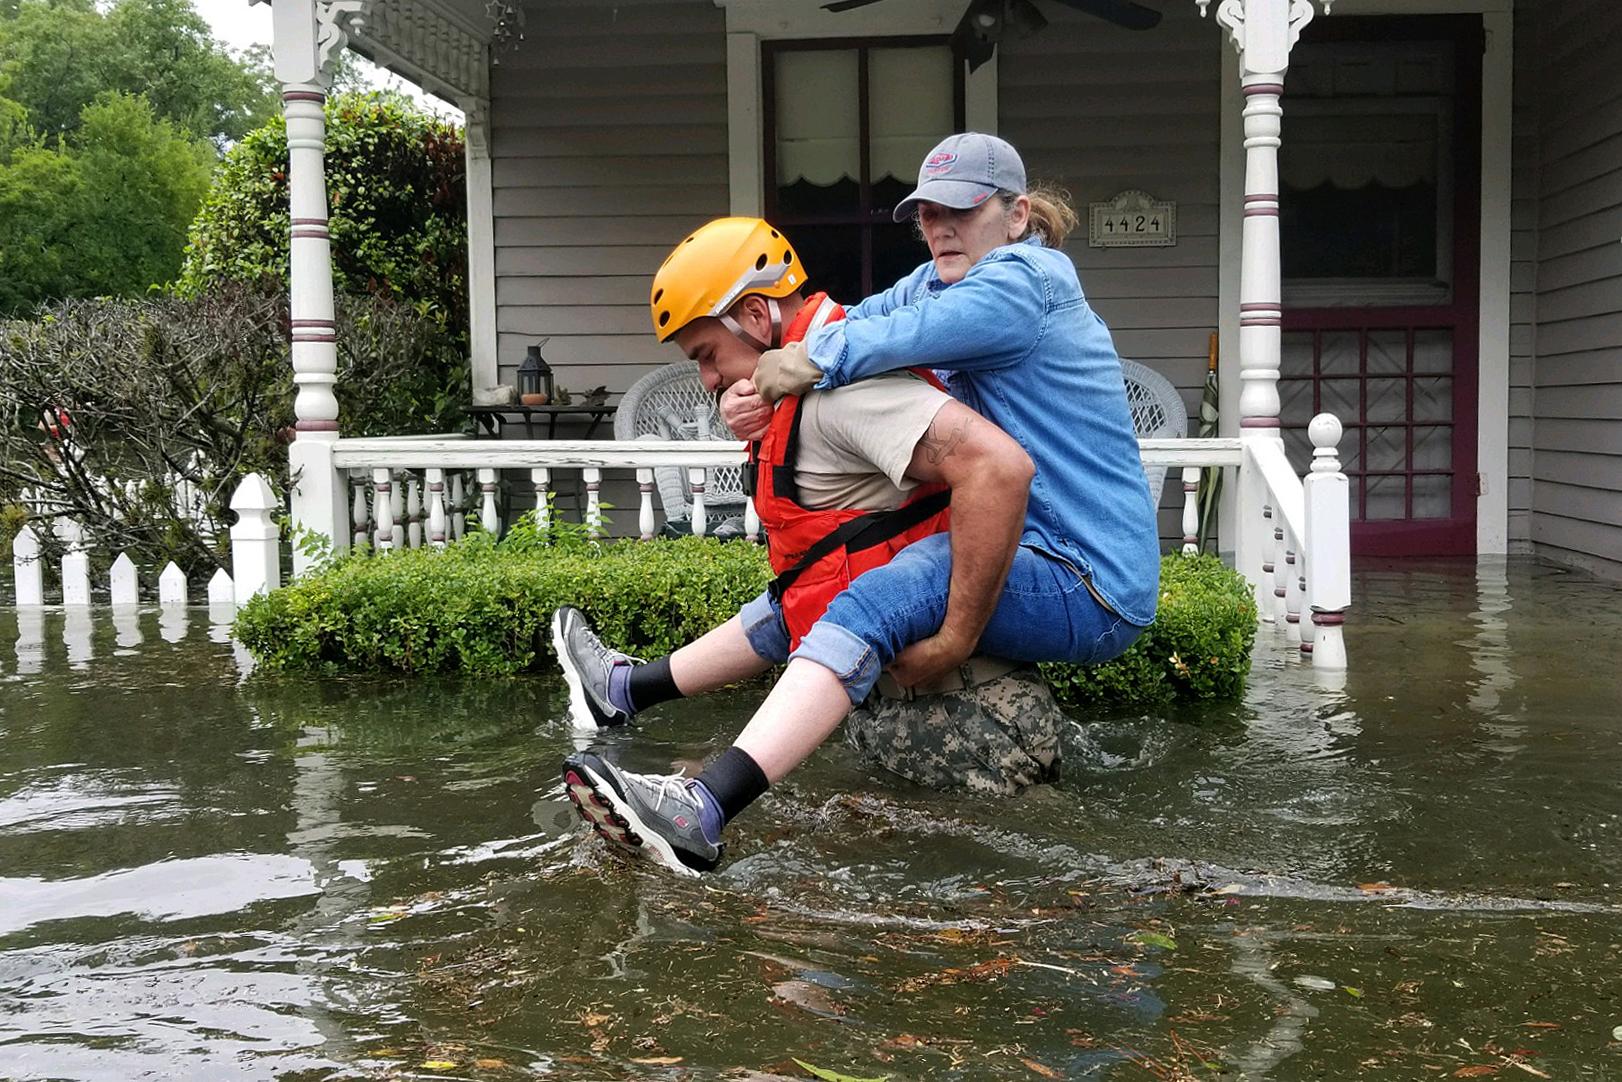 harvey_rescue_by_army_national_guard_photo_by_lt._zachary_west.jpg